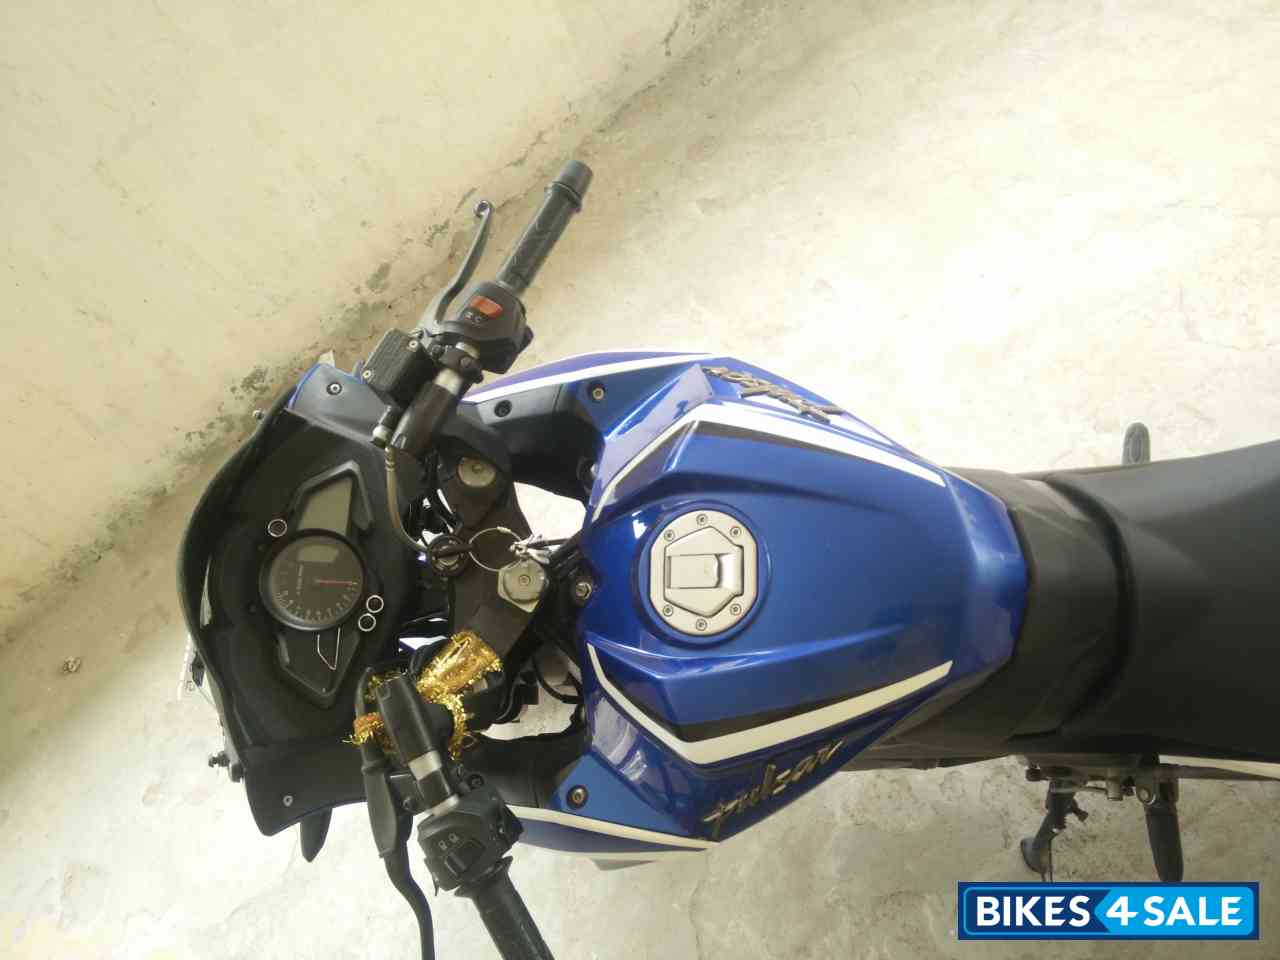 Used 2017 model Bajaj Pulsar RS 200 ABS for sale in Hyderabad  ID